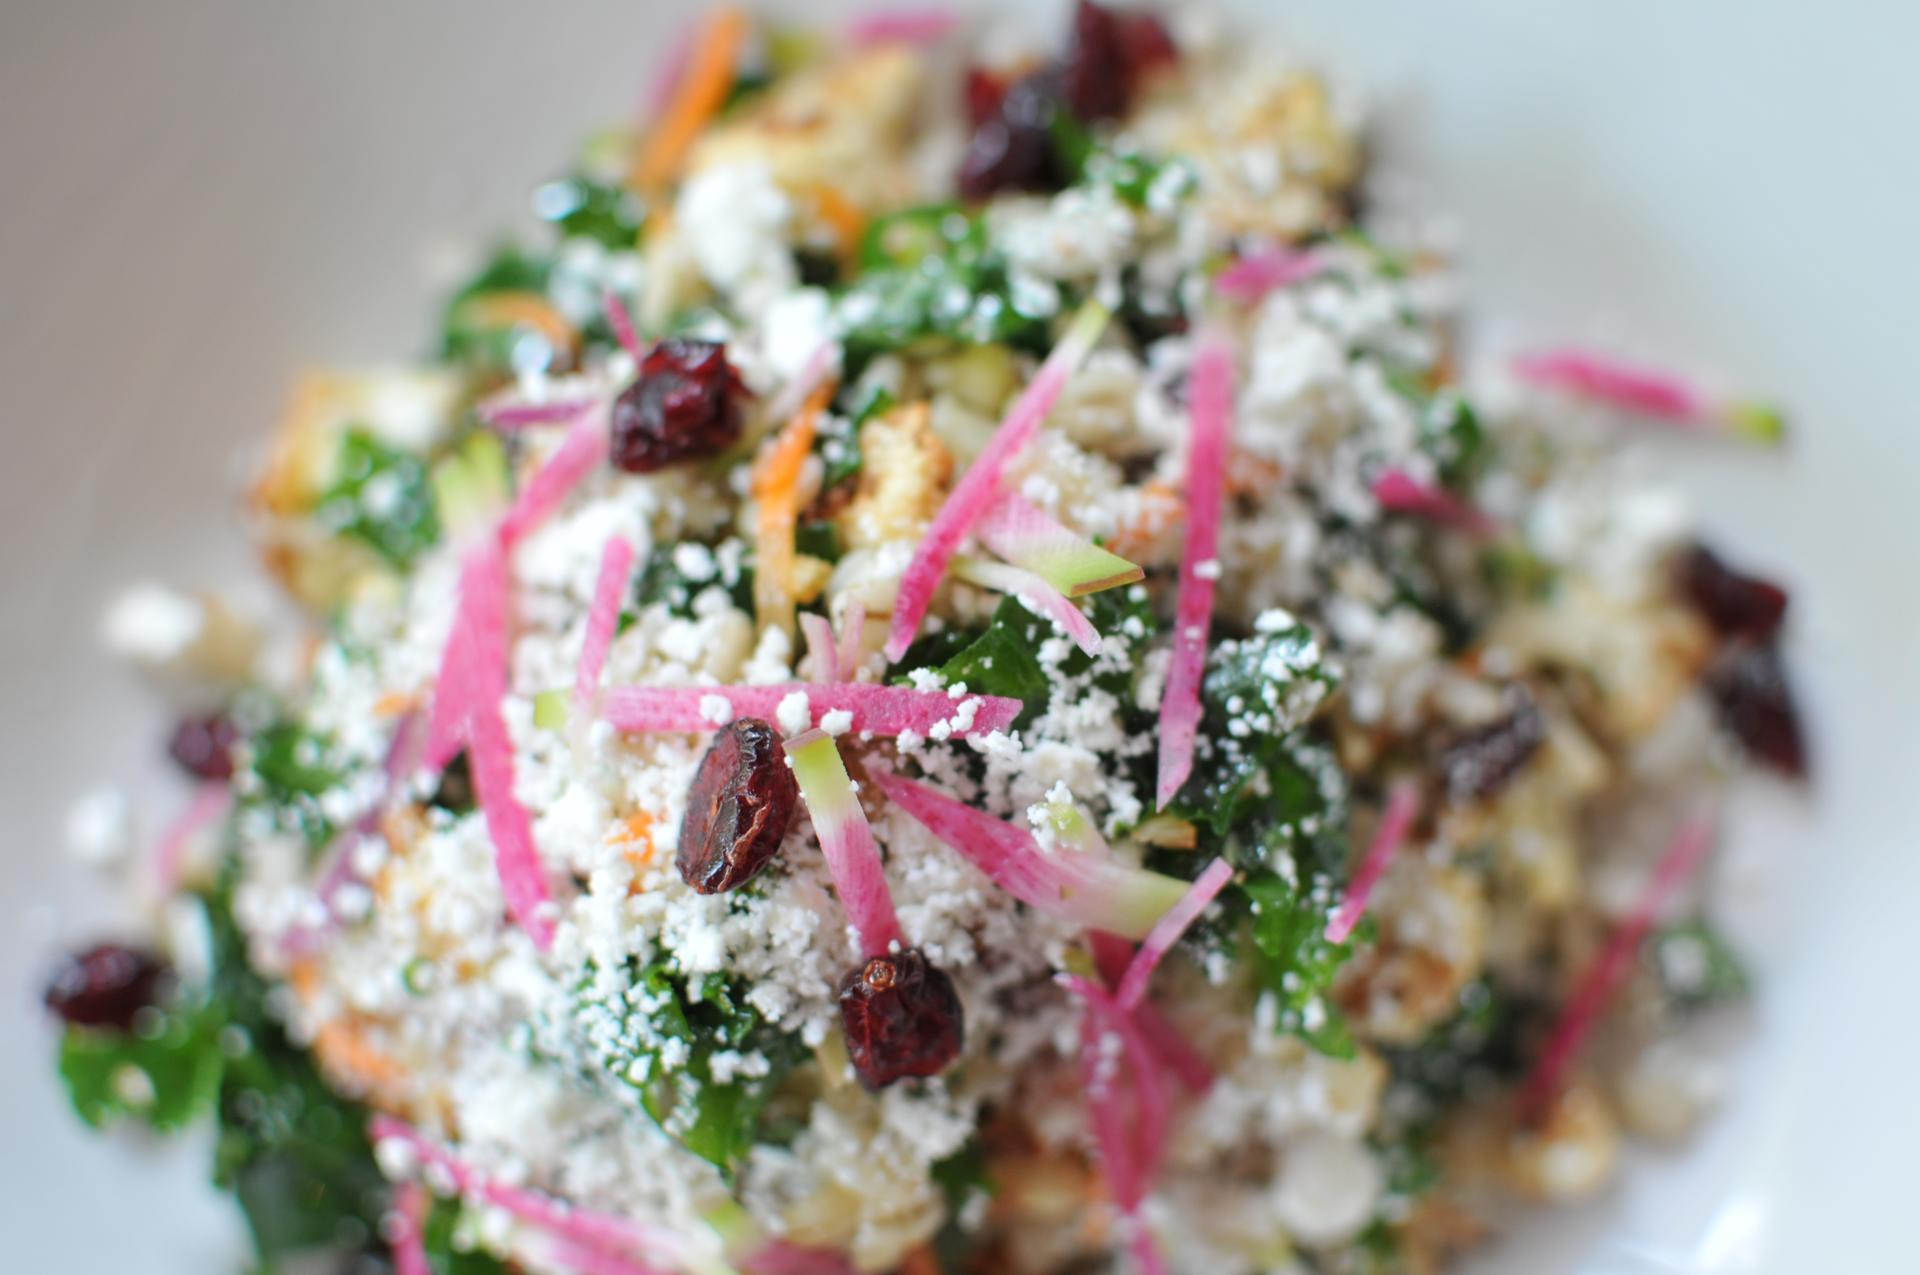 kale and barley salad close up